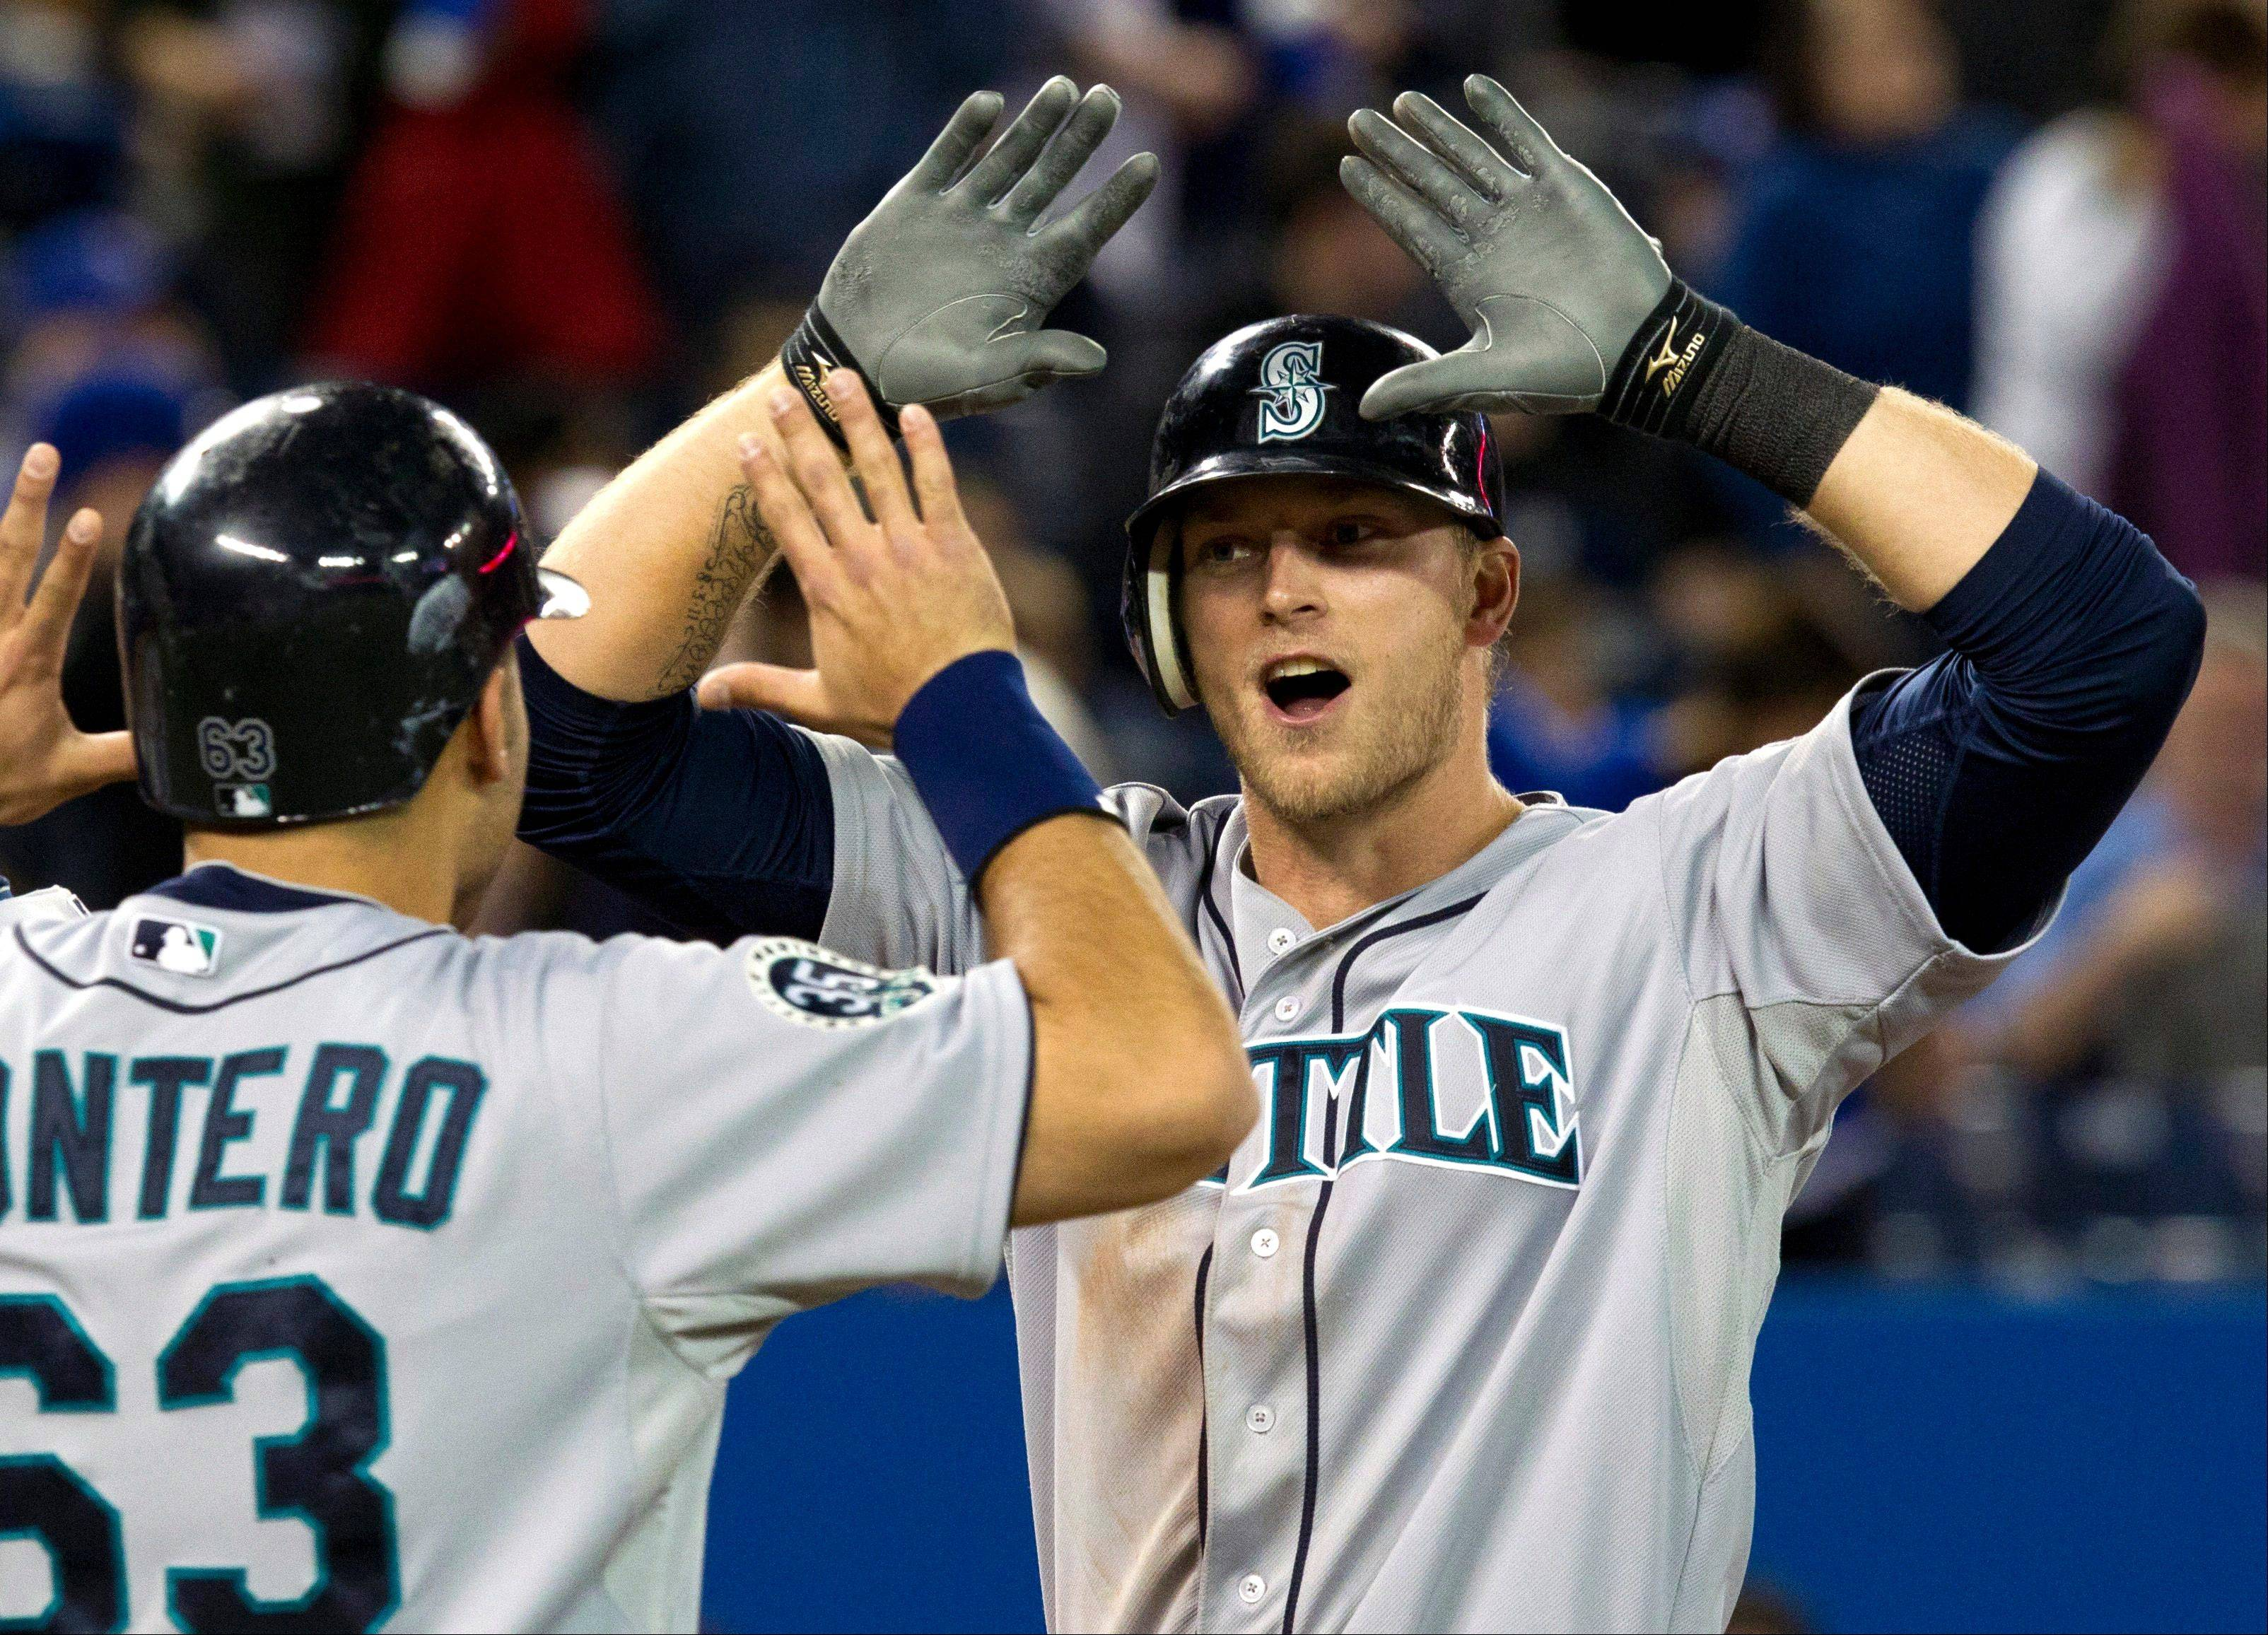 Seattle's Michael Saunders, right, celebrates his 10th-inning grand slam with teammate Jesus Montero on Friday in Toronto.